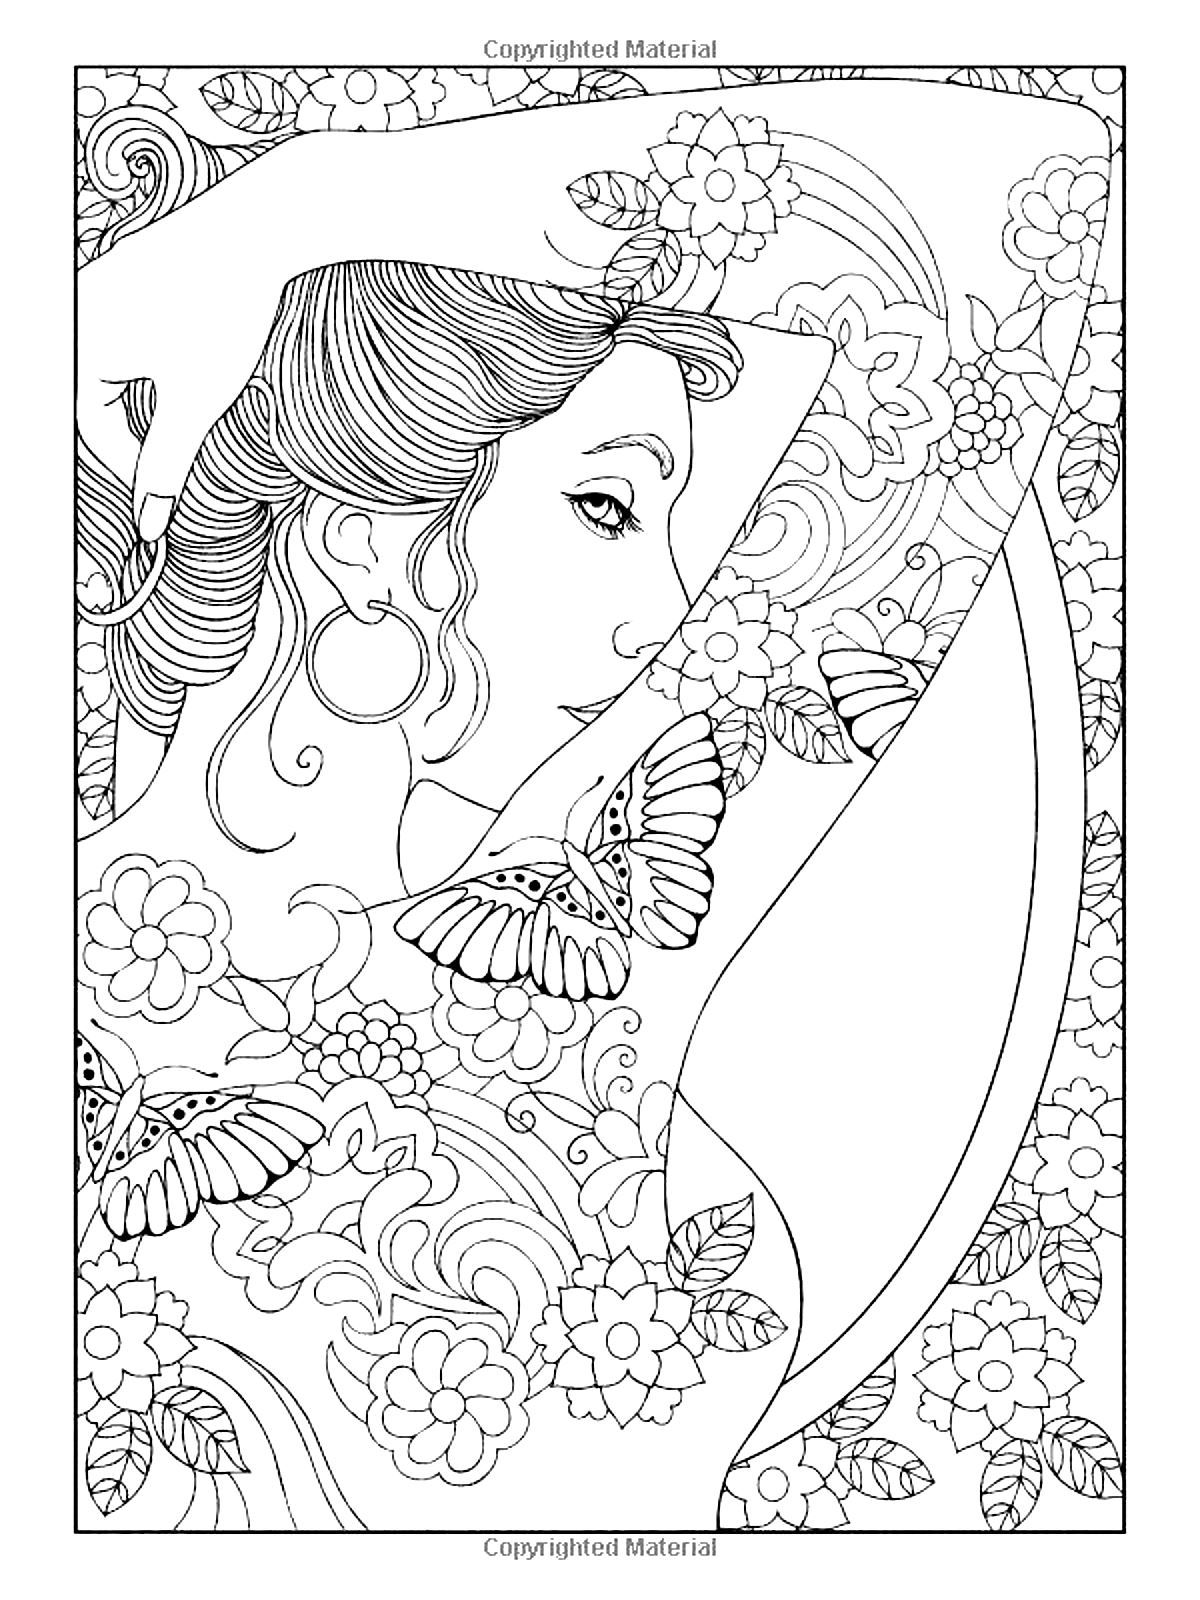 Pin by Delaney Gray on kiddos | Lion coloring pages, Free adult ... | 1600x1200